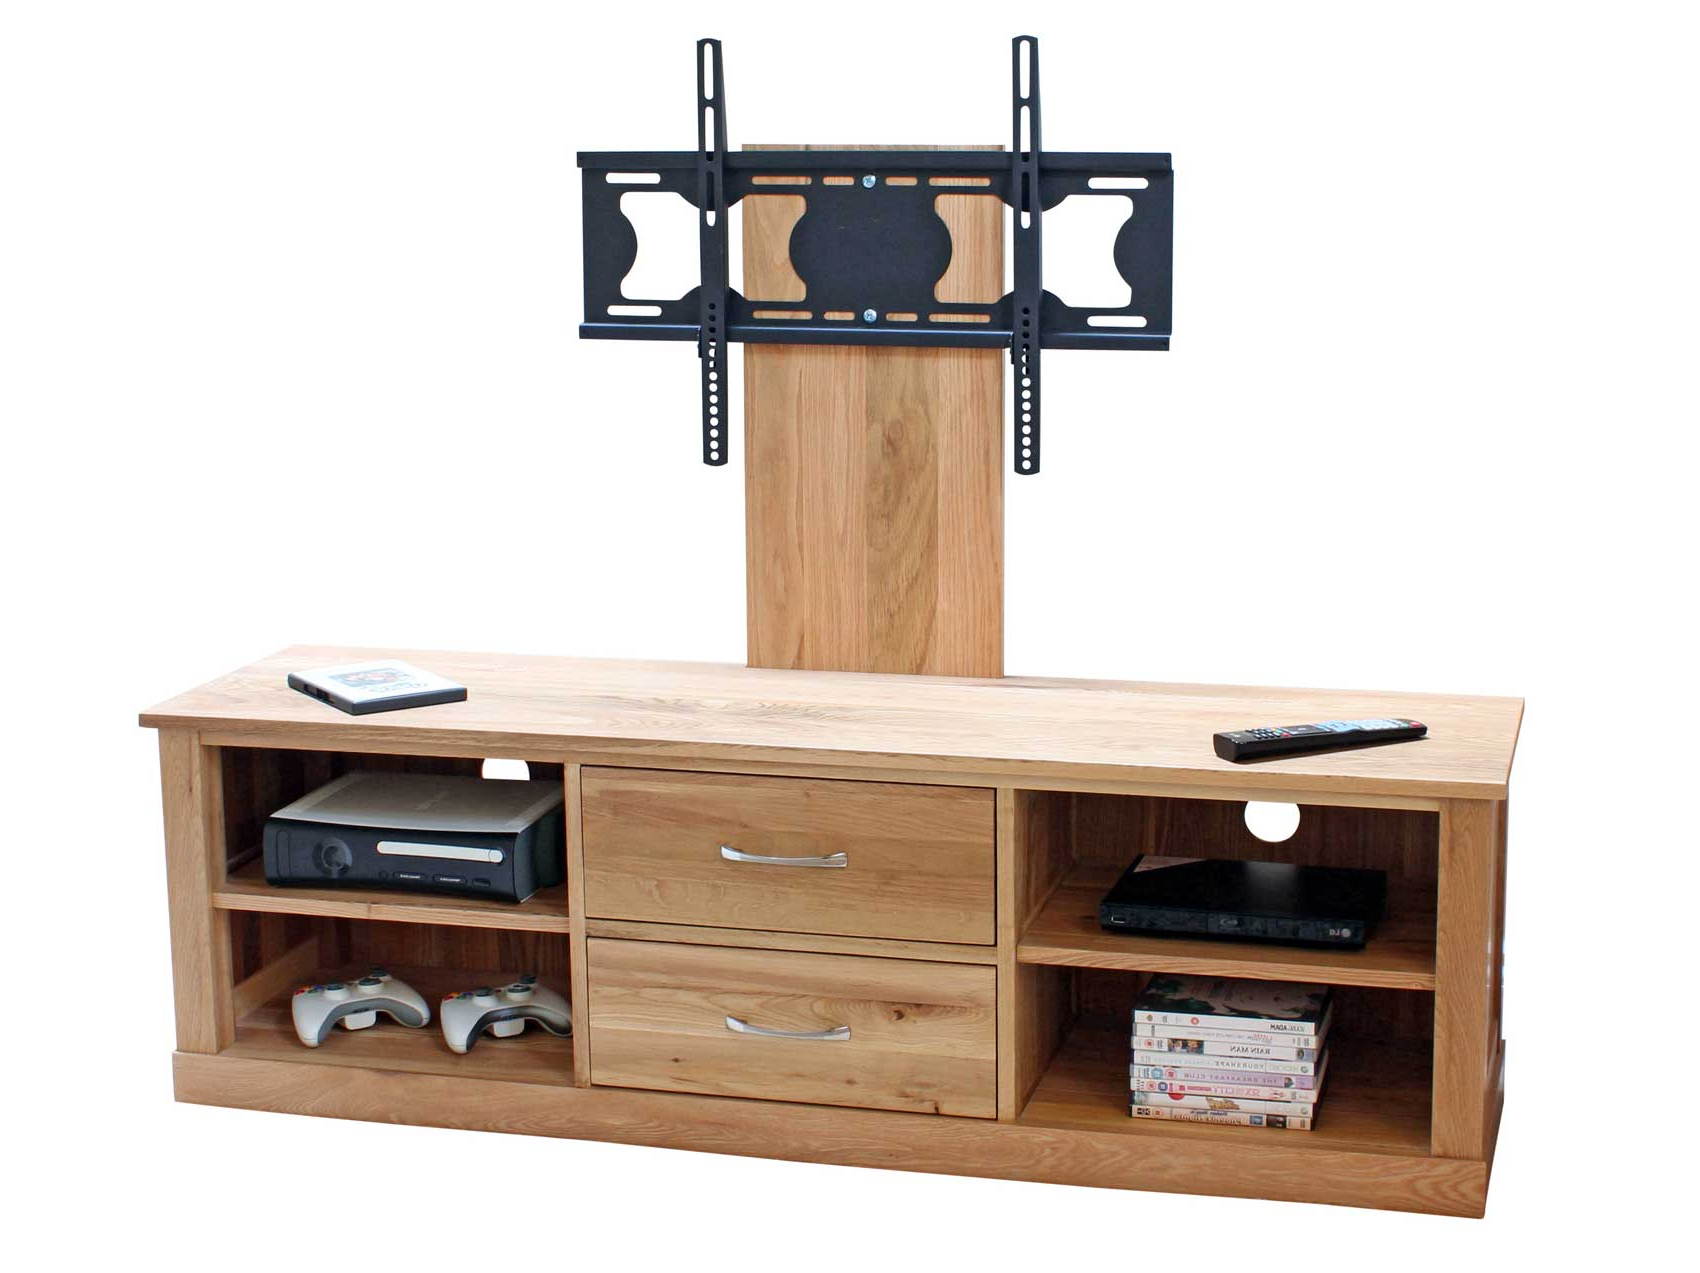 Homesfeed Pertaining To Unique Tv Stands For Flat Screens (View 9 of 20)